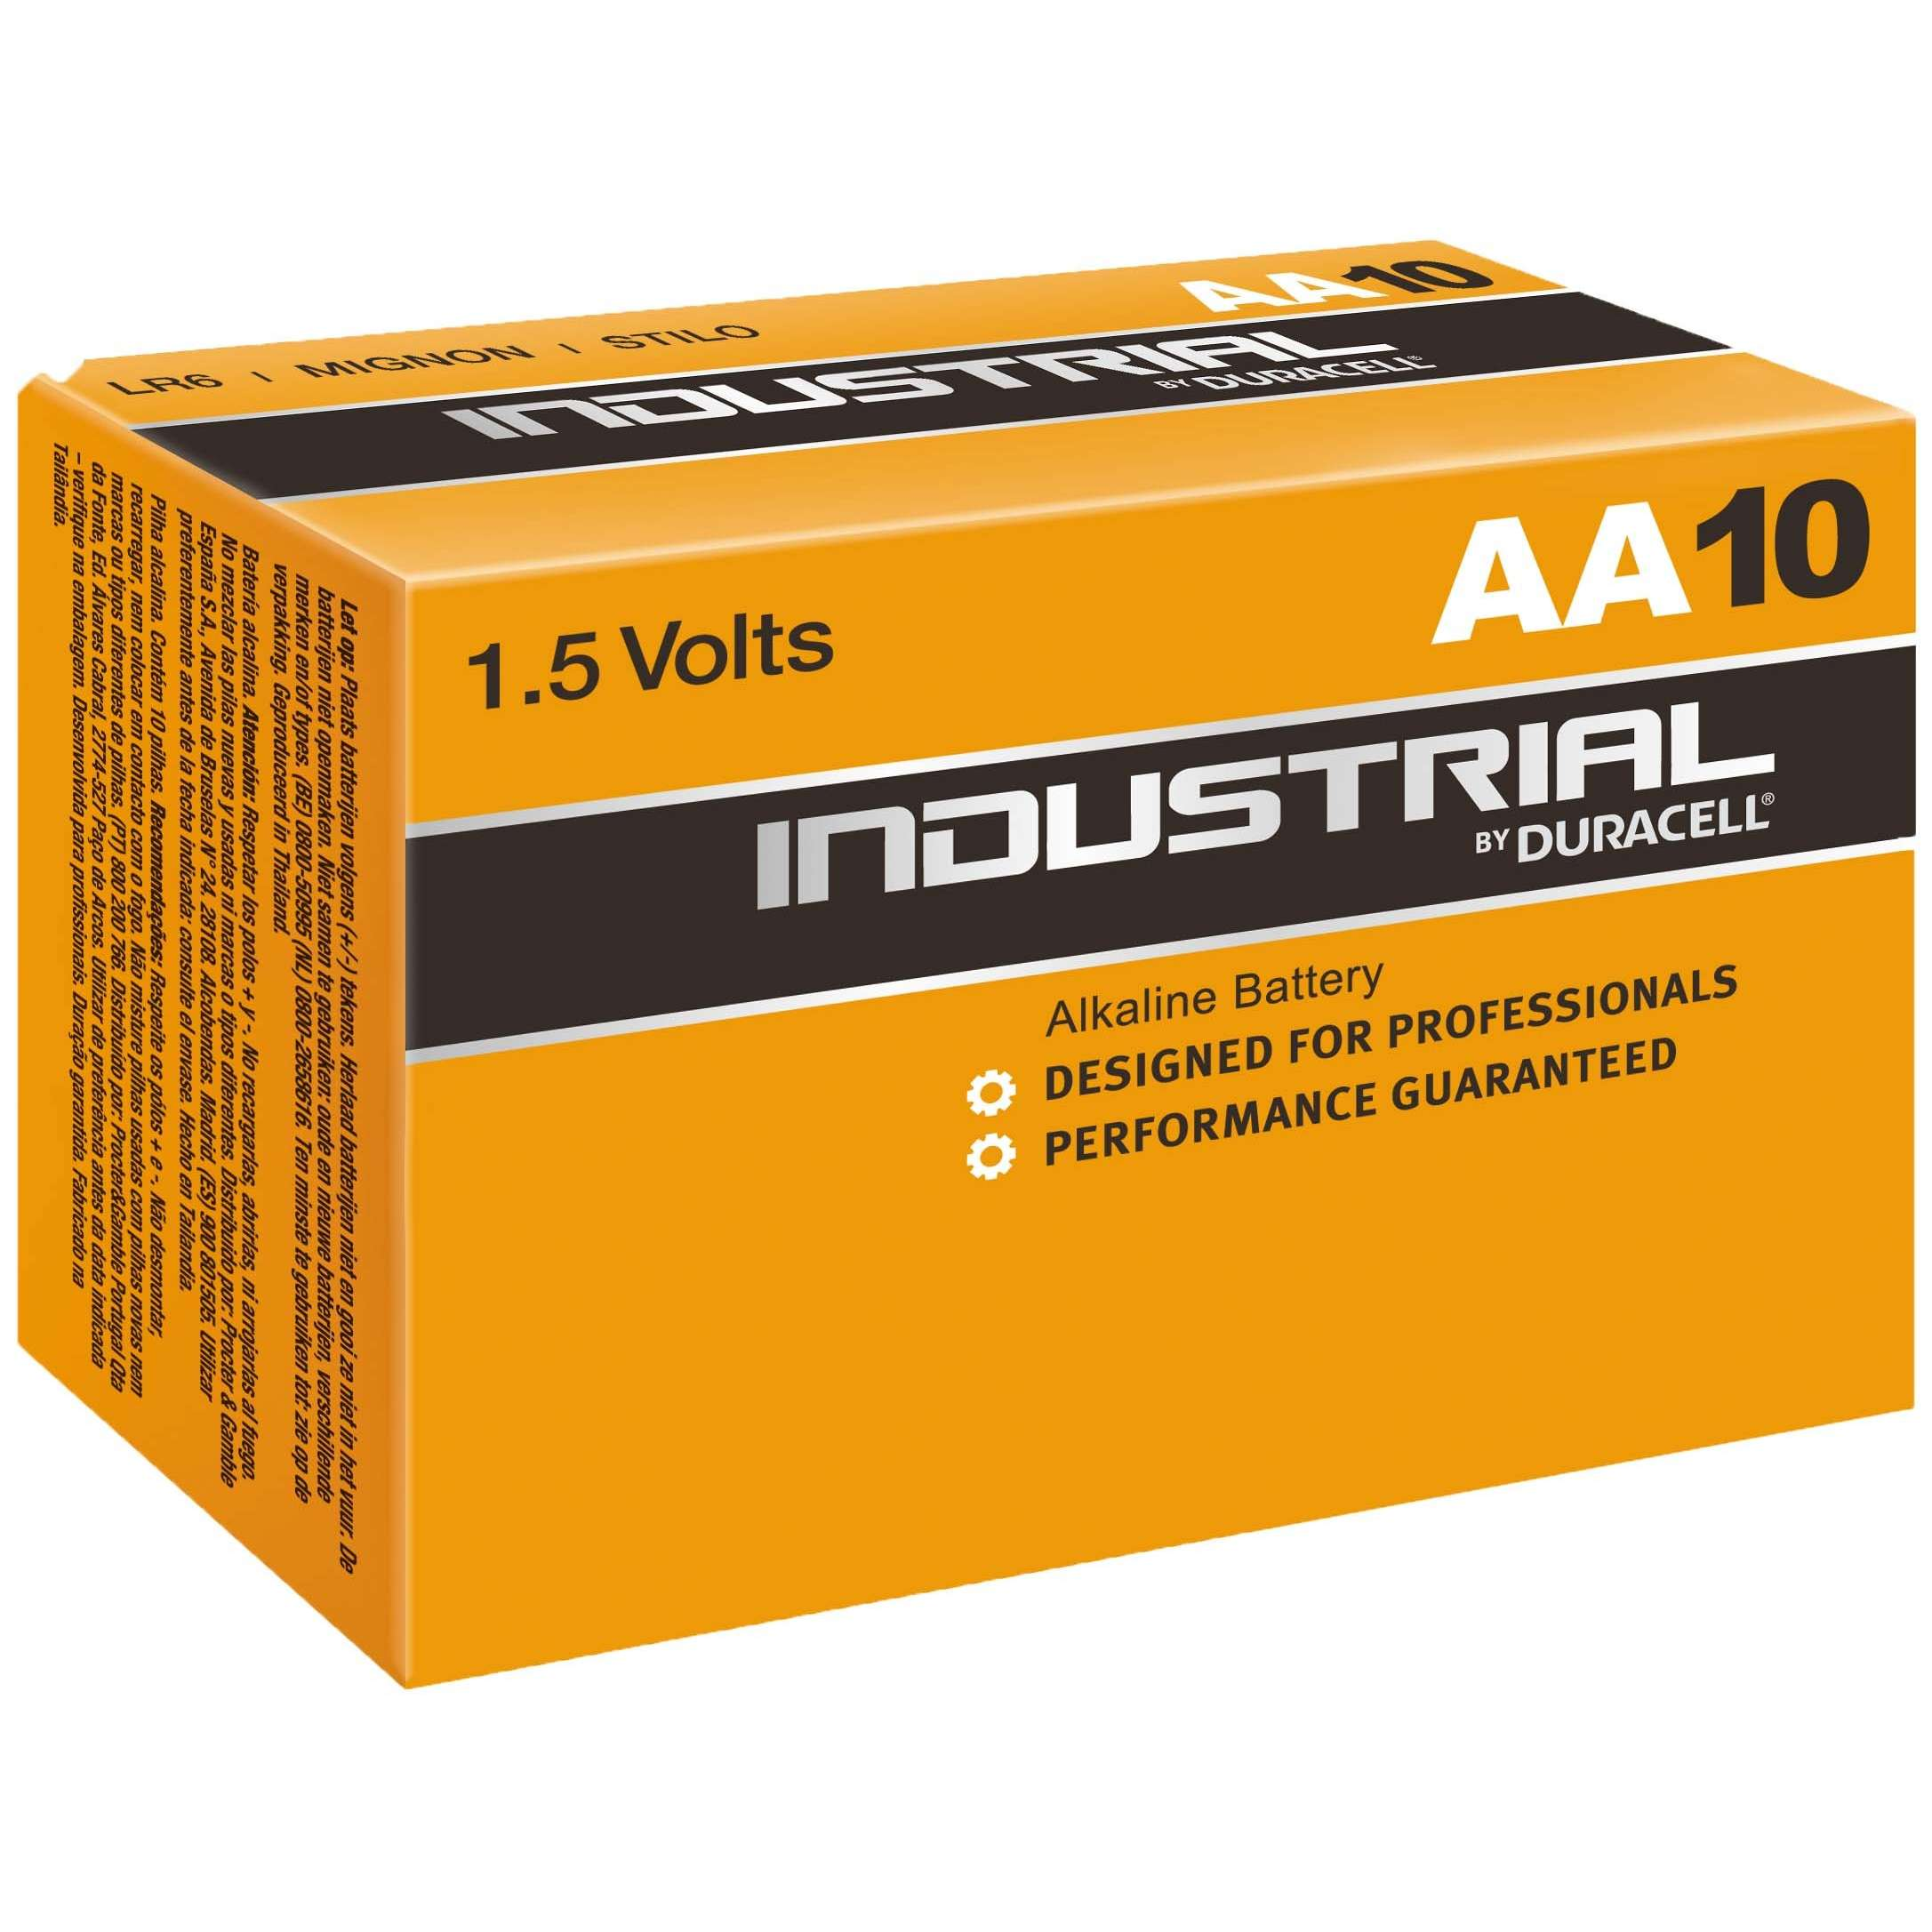 Duracell Industrial AA Battery (Box of 10)